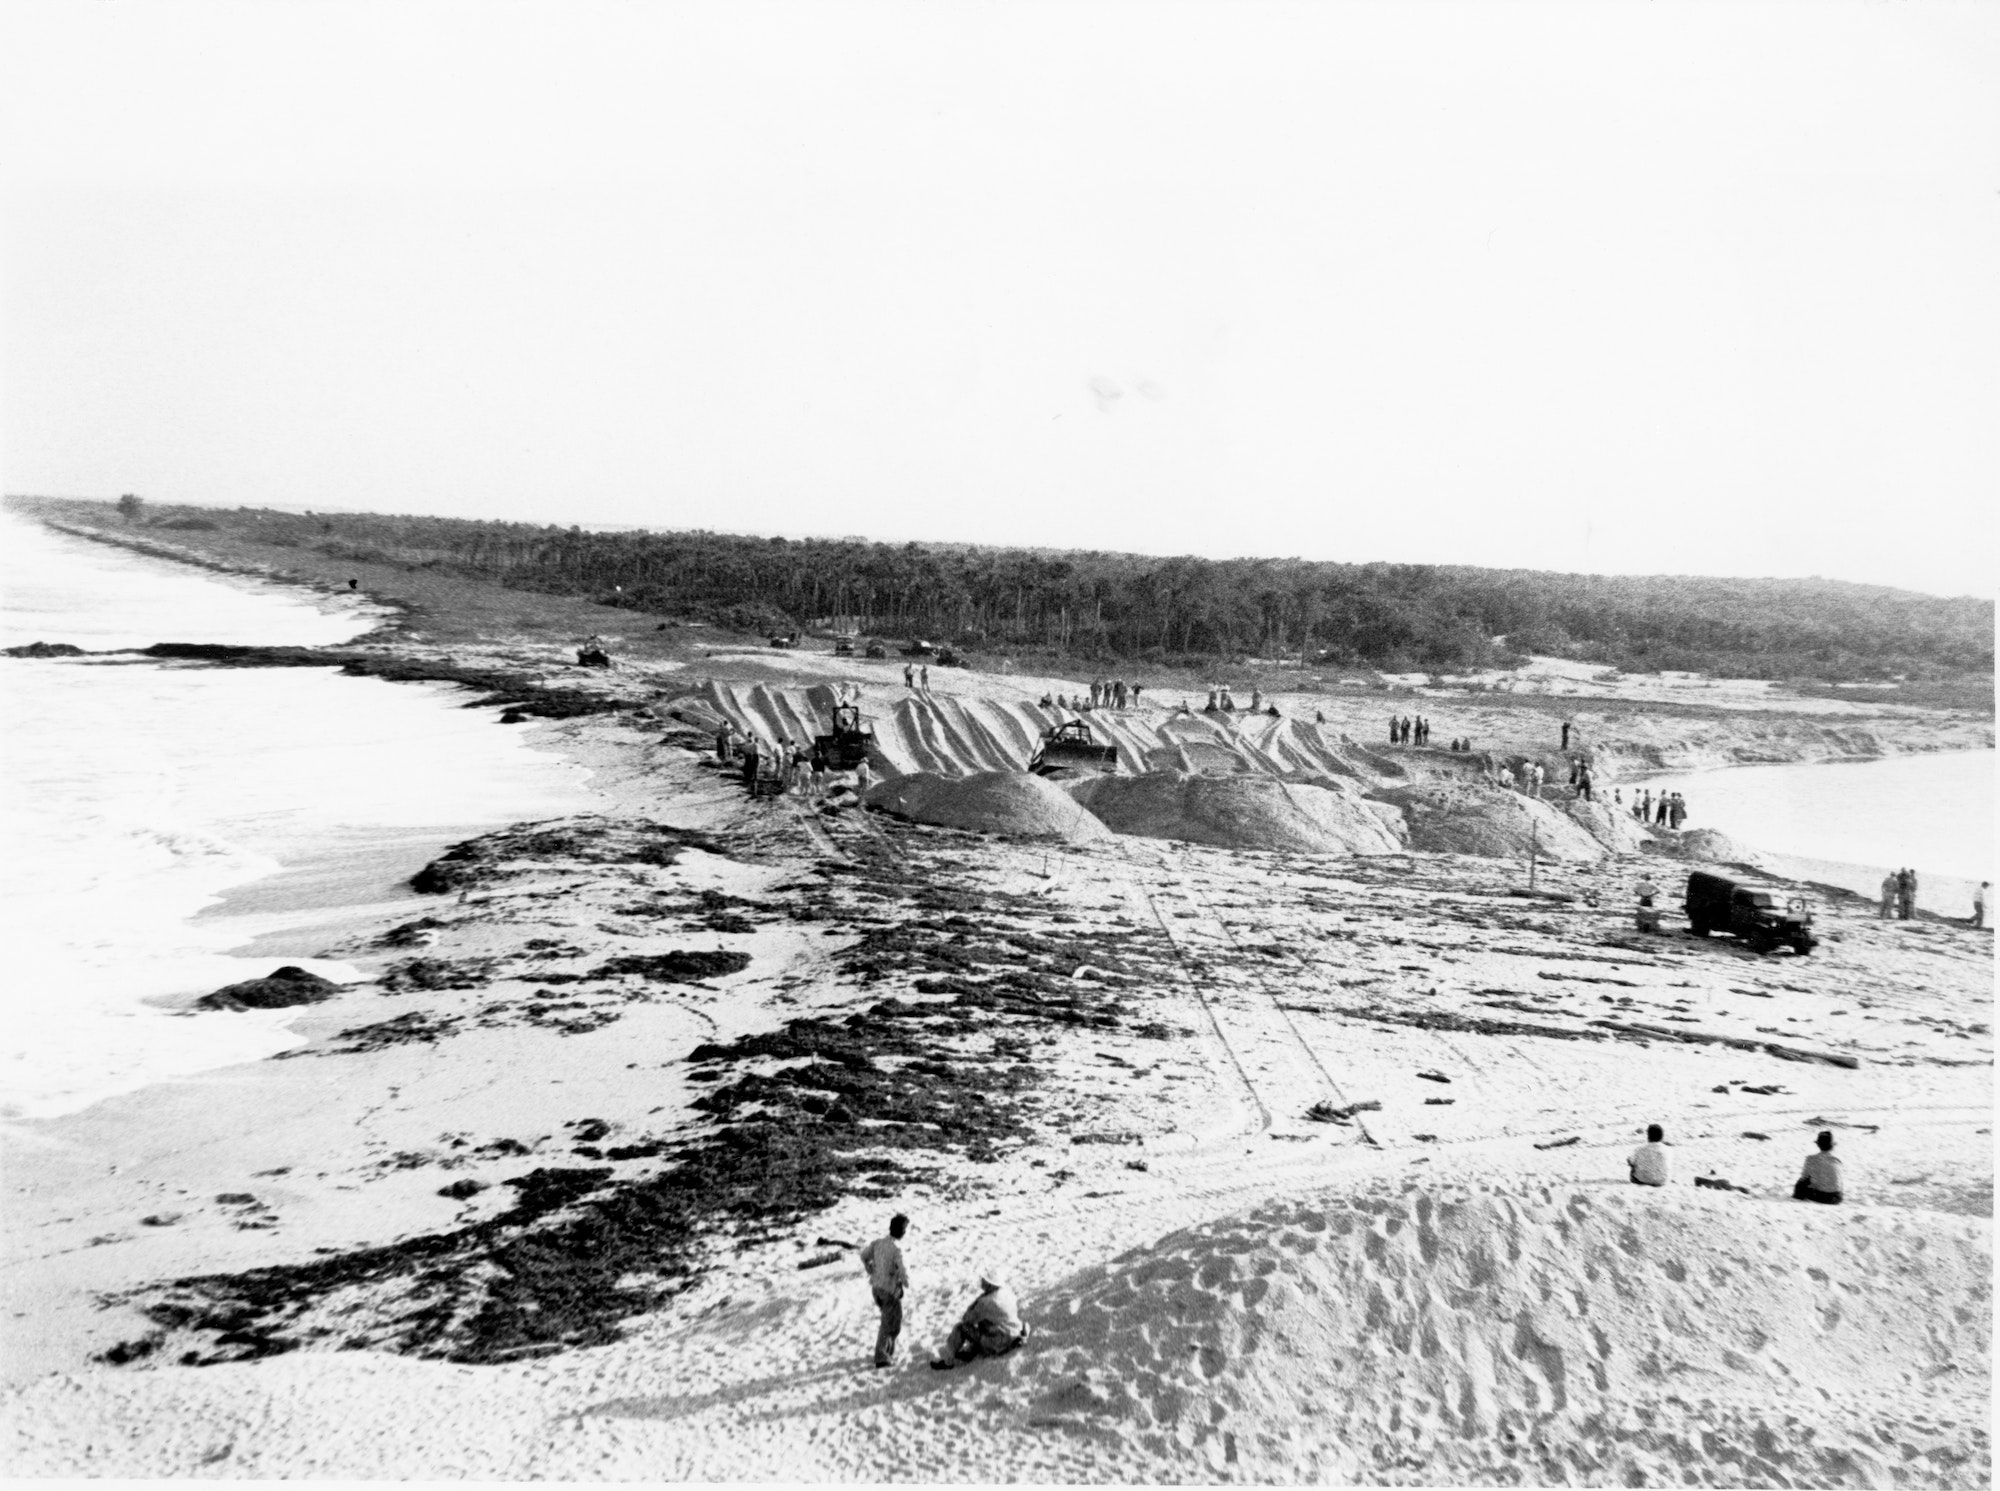 wide view of bulldozers working the final section of sand between the Indian River and the waters of the Atlantic Ocean